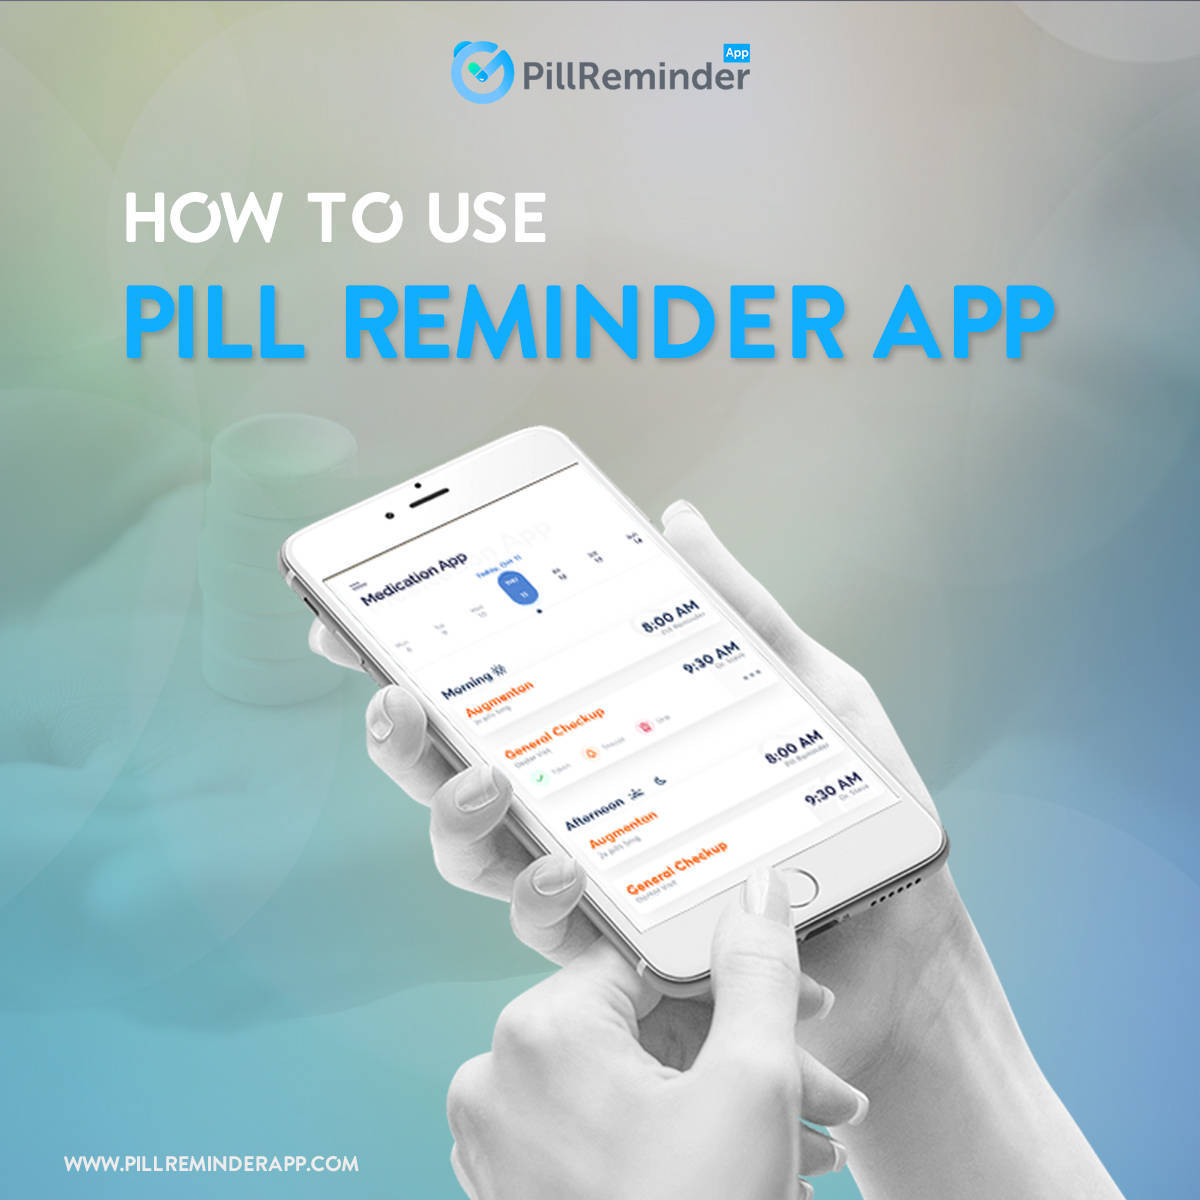 How to Use Pill Reminder App